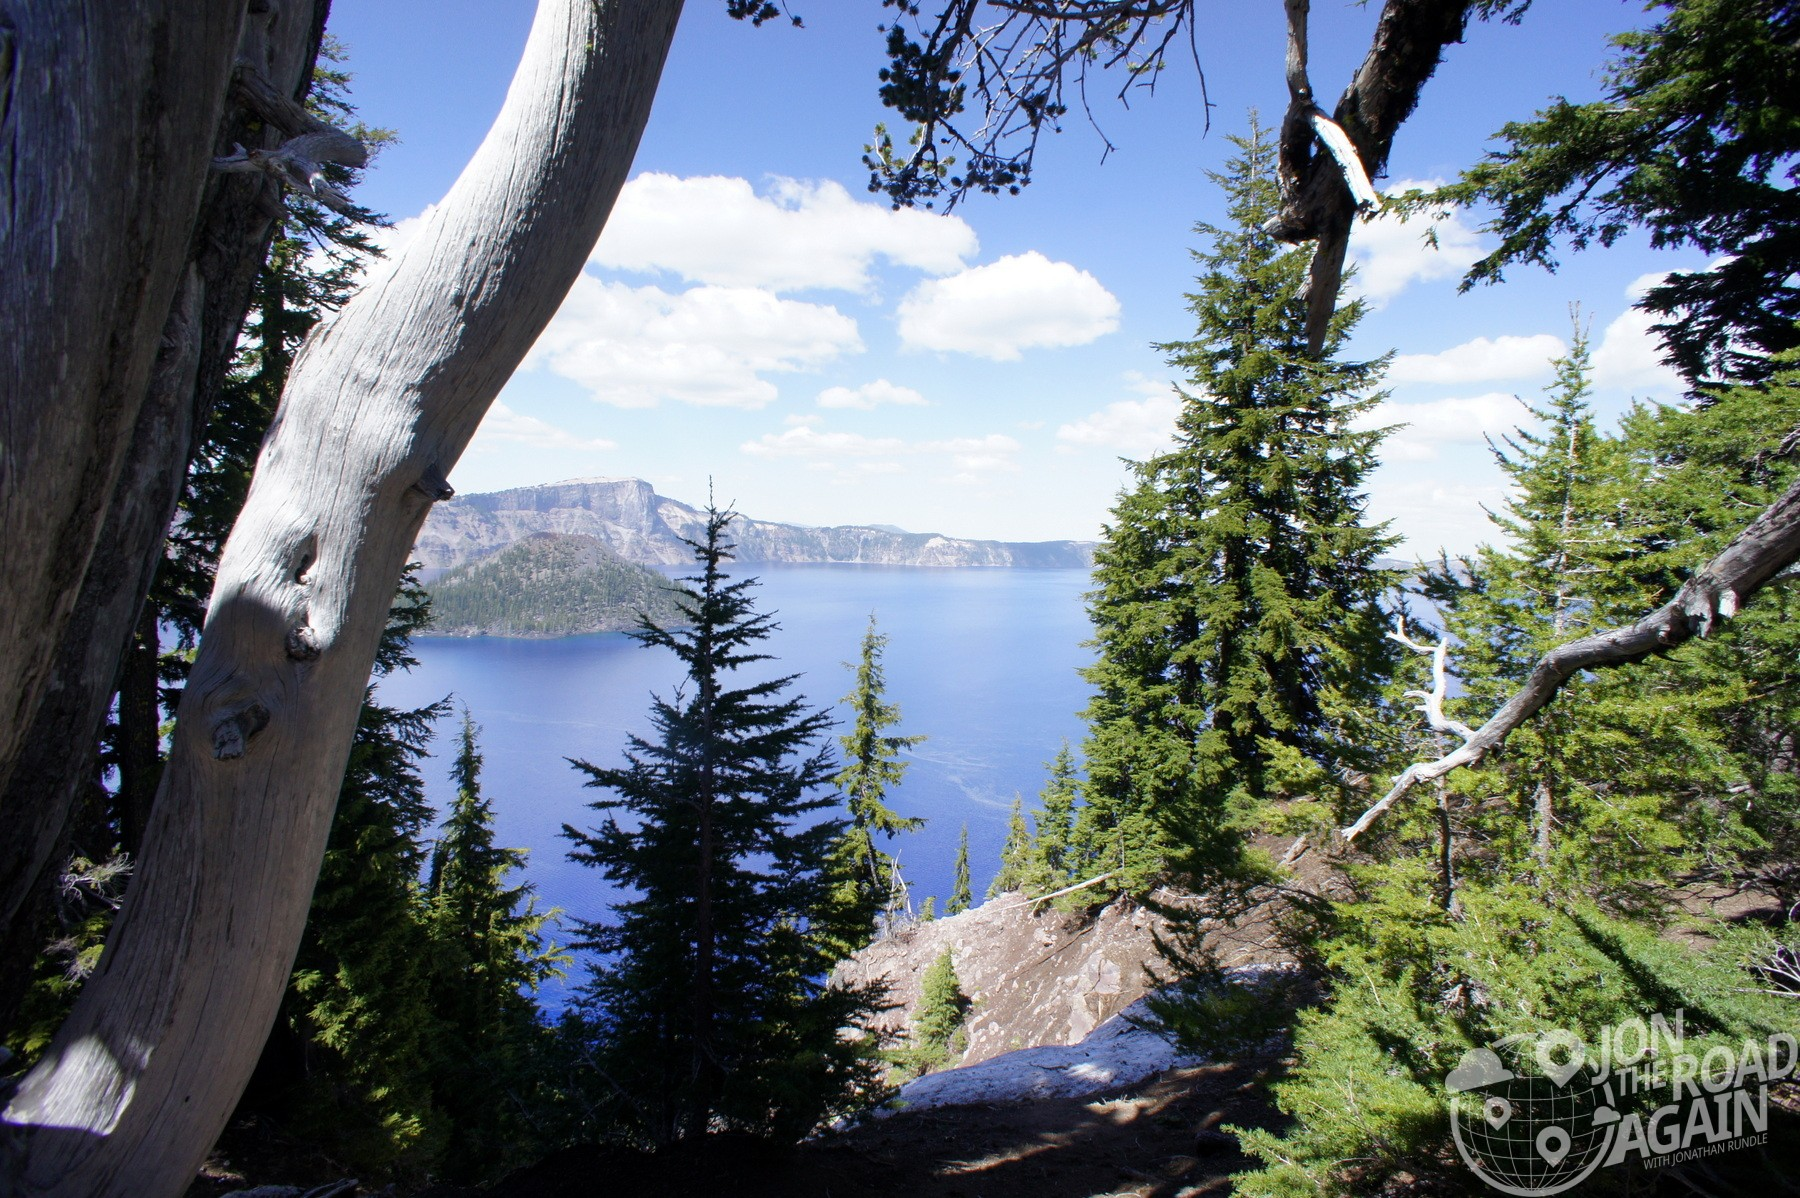 A peek at crater lake